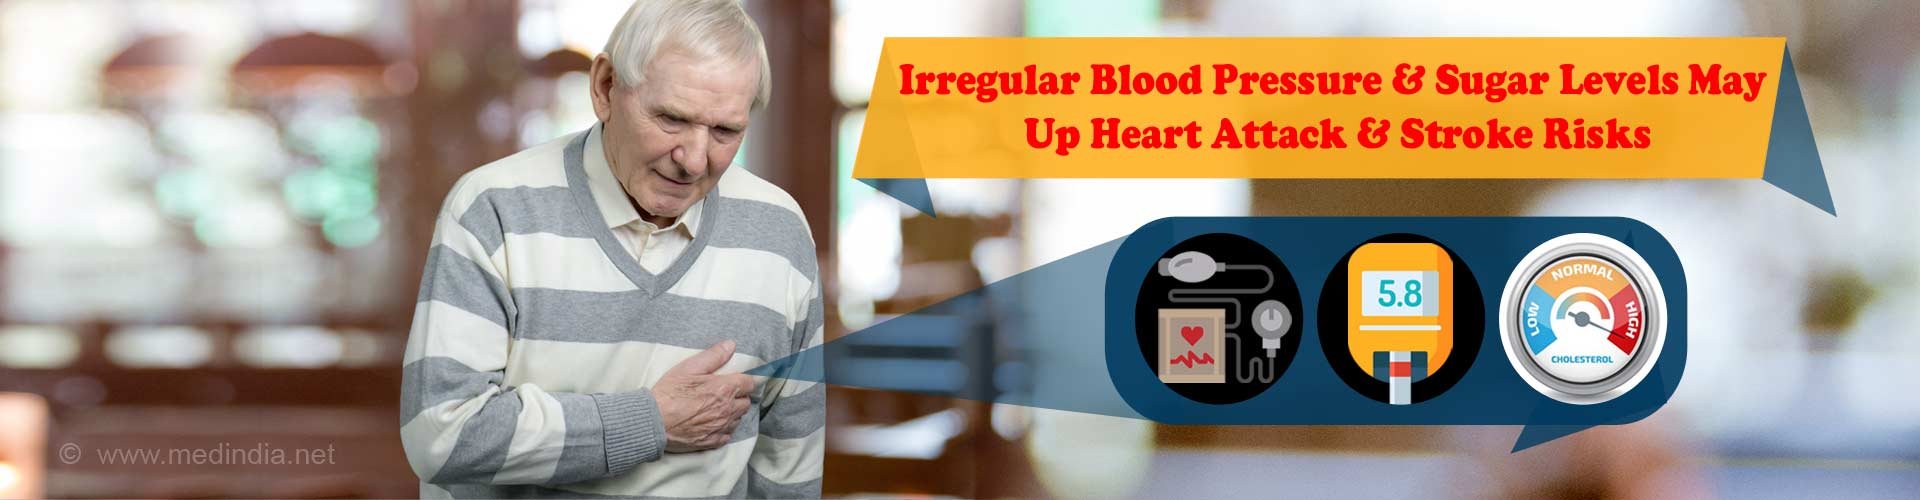 Heart Attack,Stroke Risk Increases With Irregular Blood Pressure, Blood Sugar